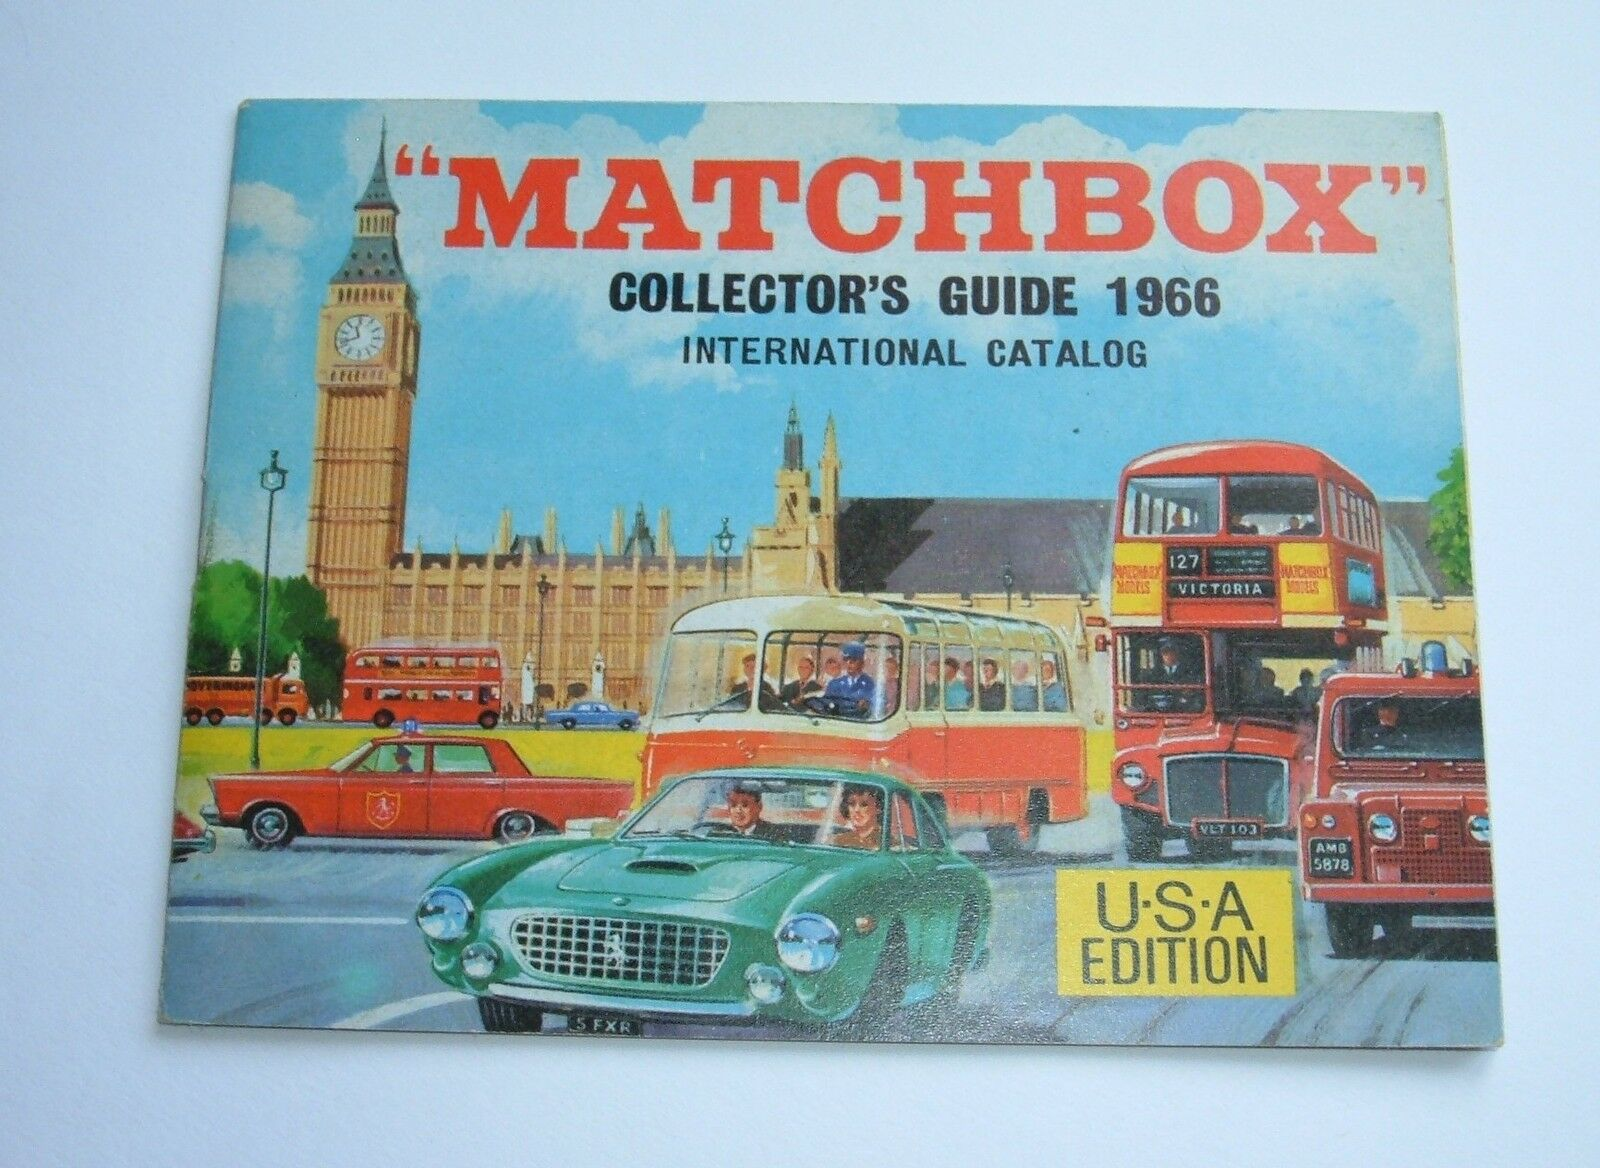 Very Rare USA Edition Matchbox Toys Catalogue, Dated 1966, Superb Mint